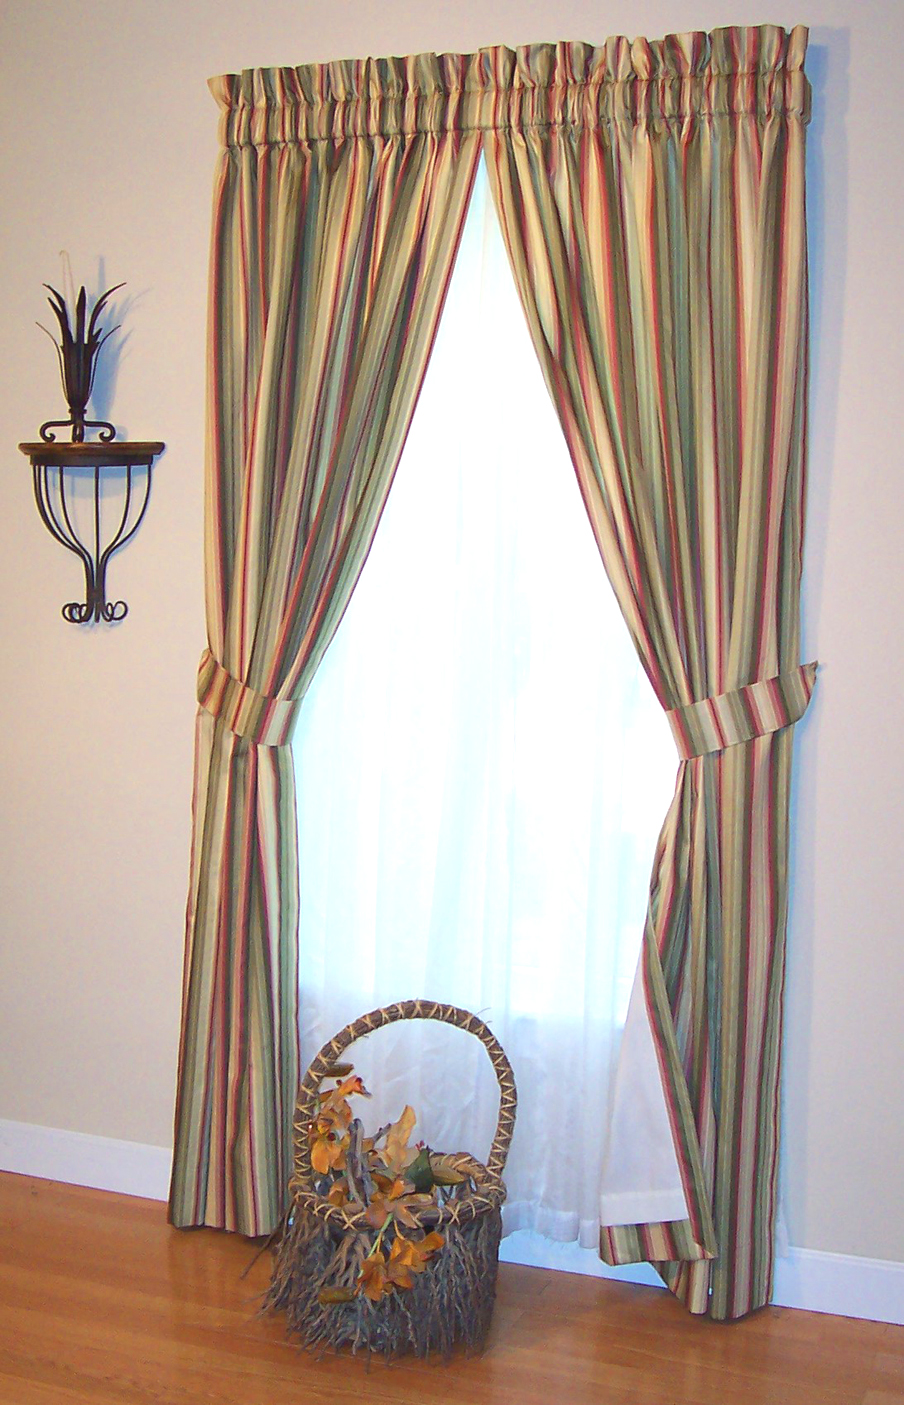 curtains kitchen designs attach target attached startling of engaging lace valance with inch size walmart cute pocket full rod valances amazing curtain sheer enchanting scarf uncommon